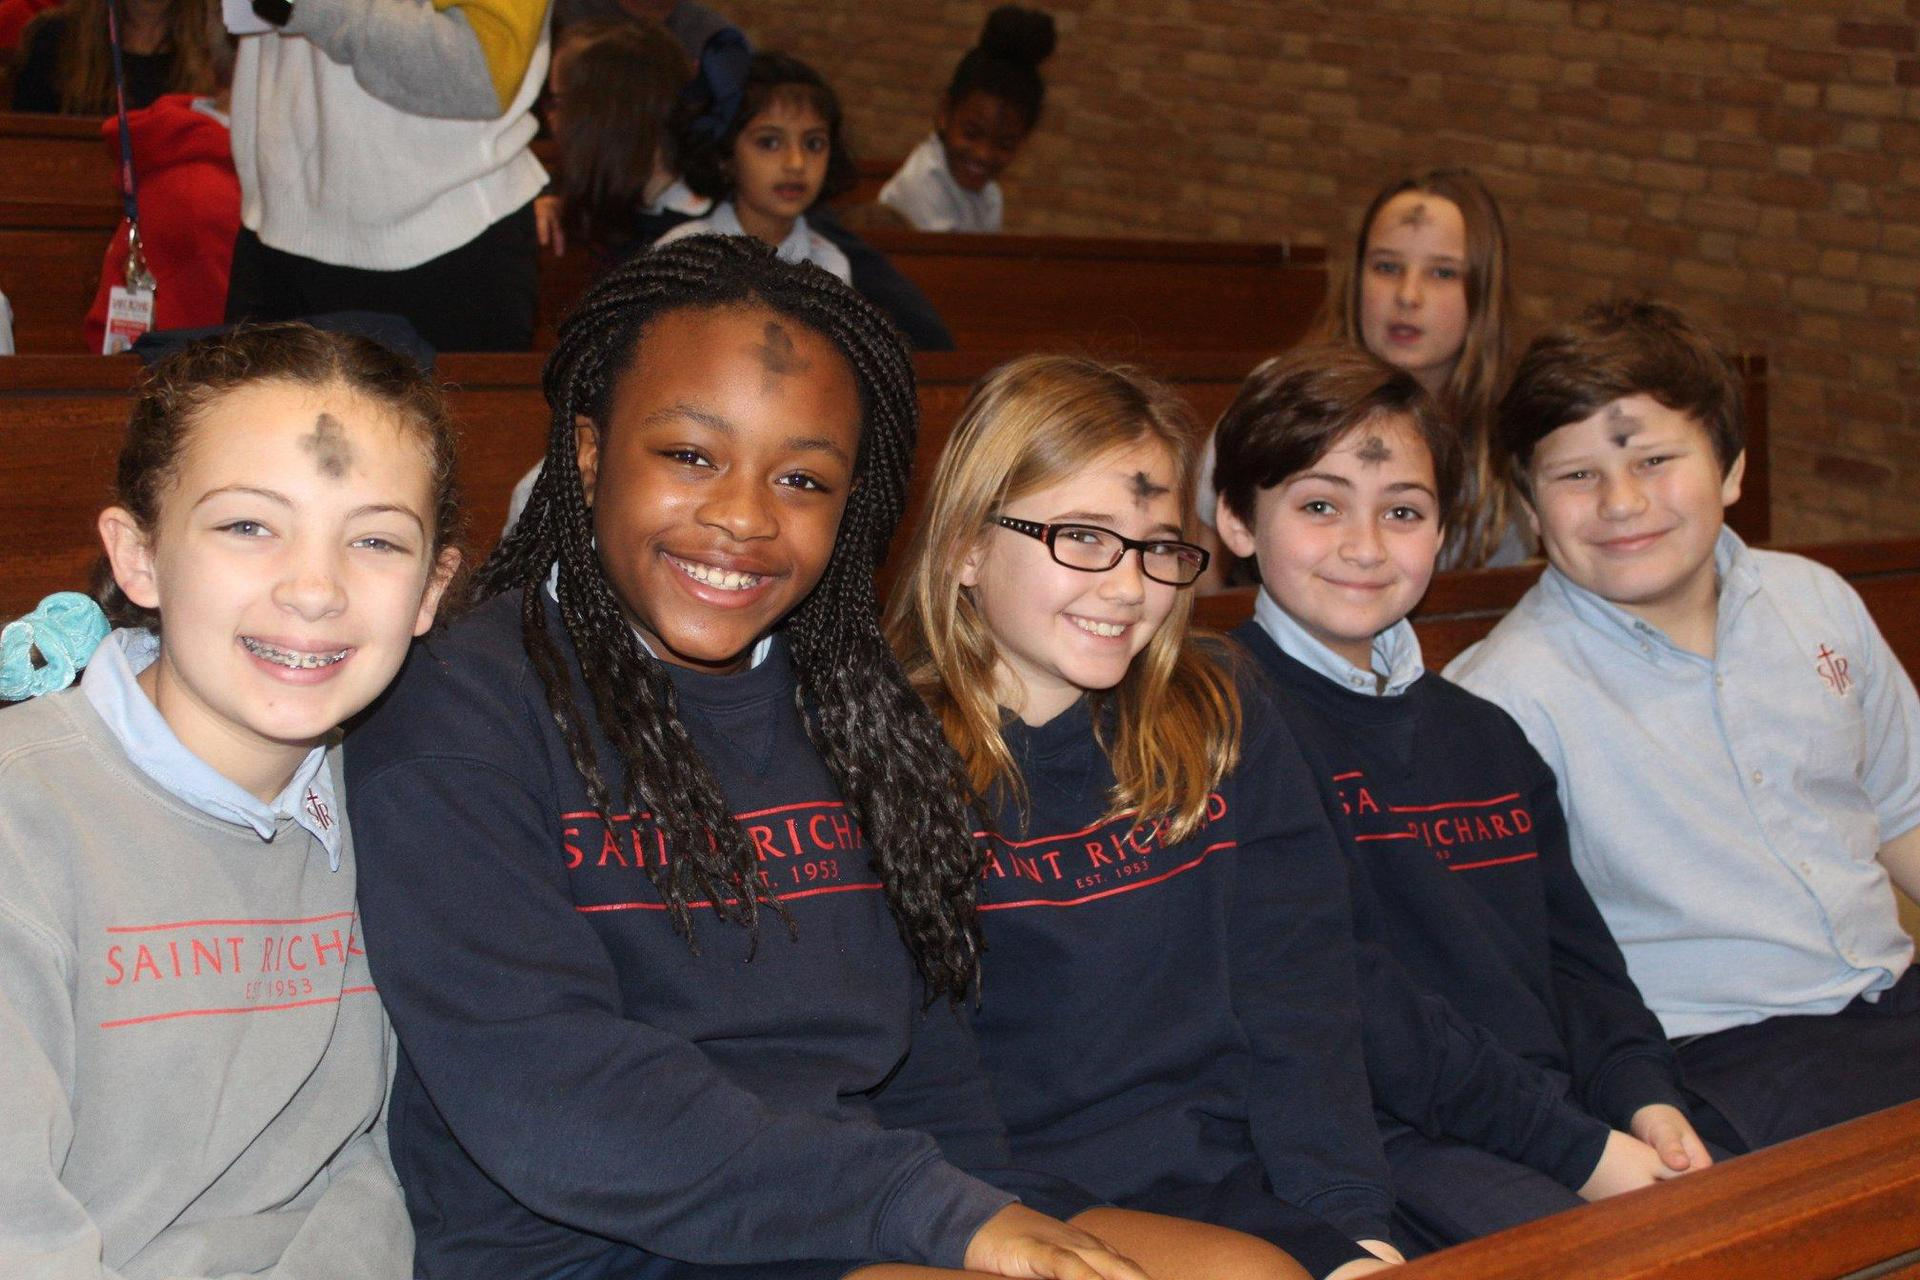 St Richard students on Ash Wednesday